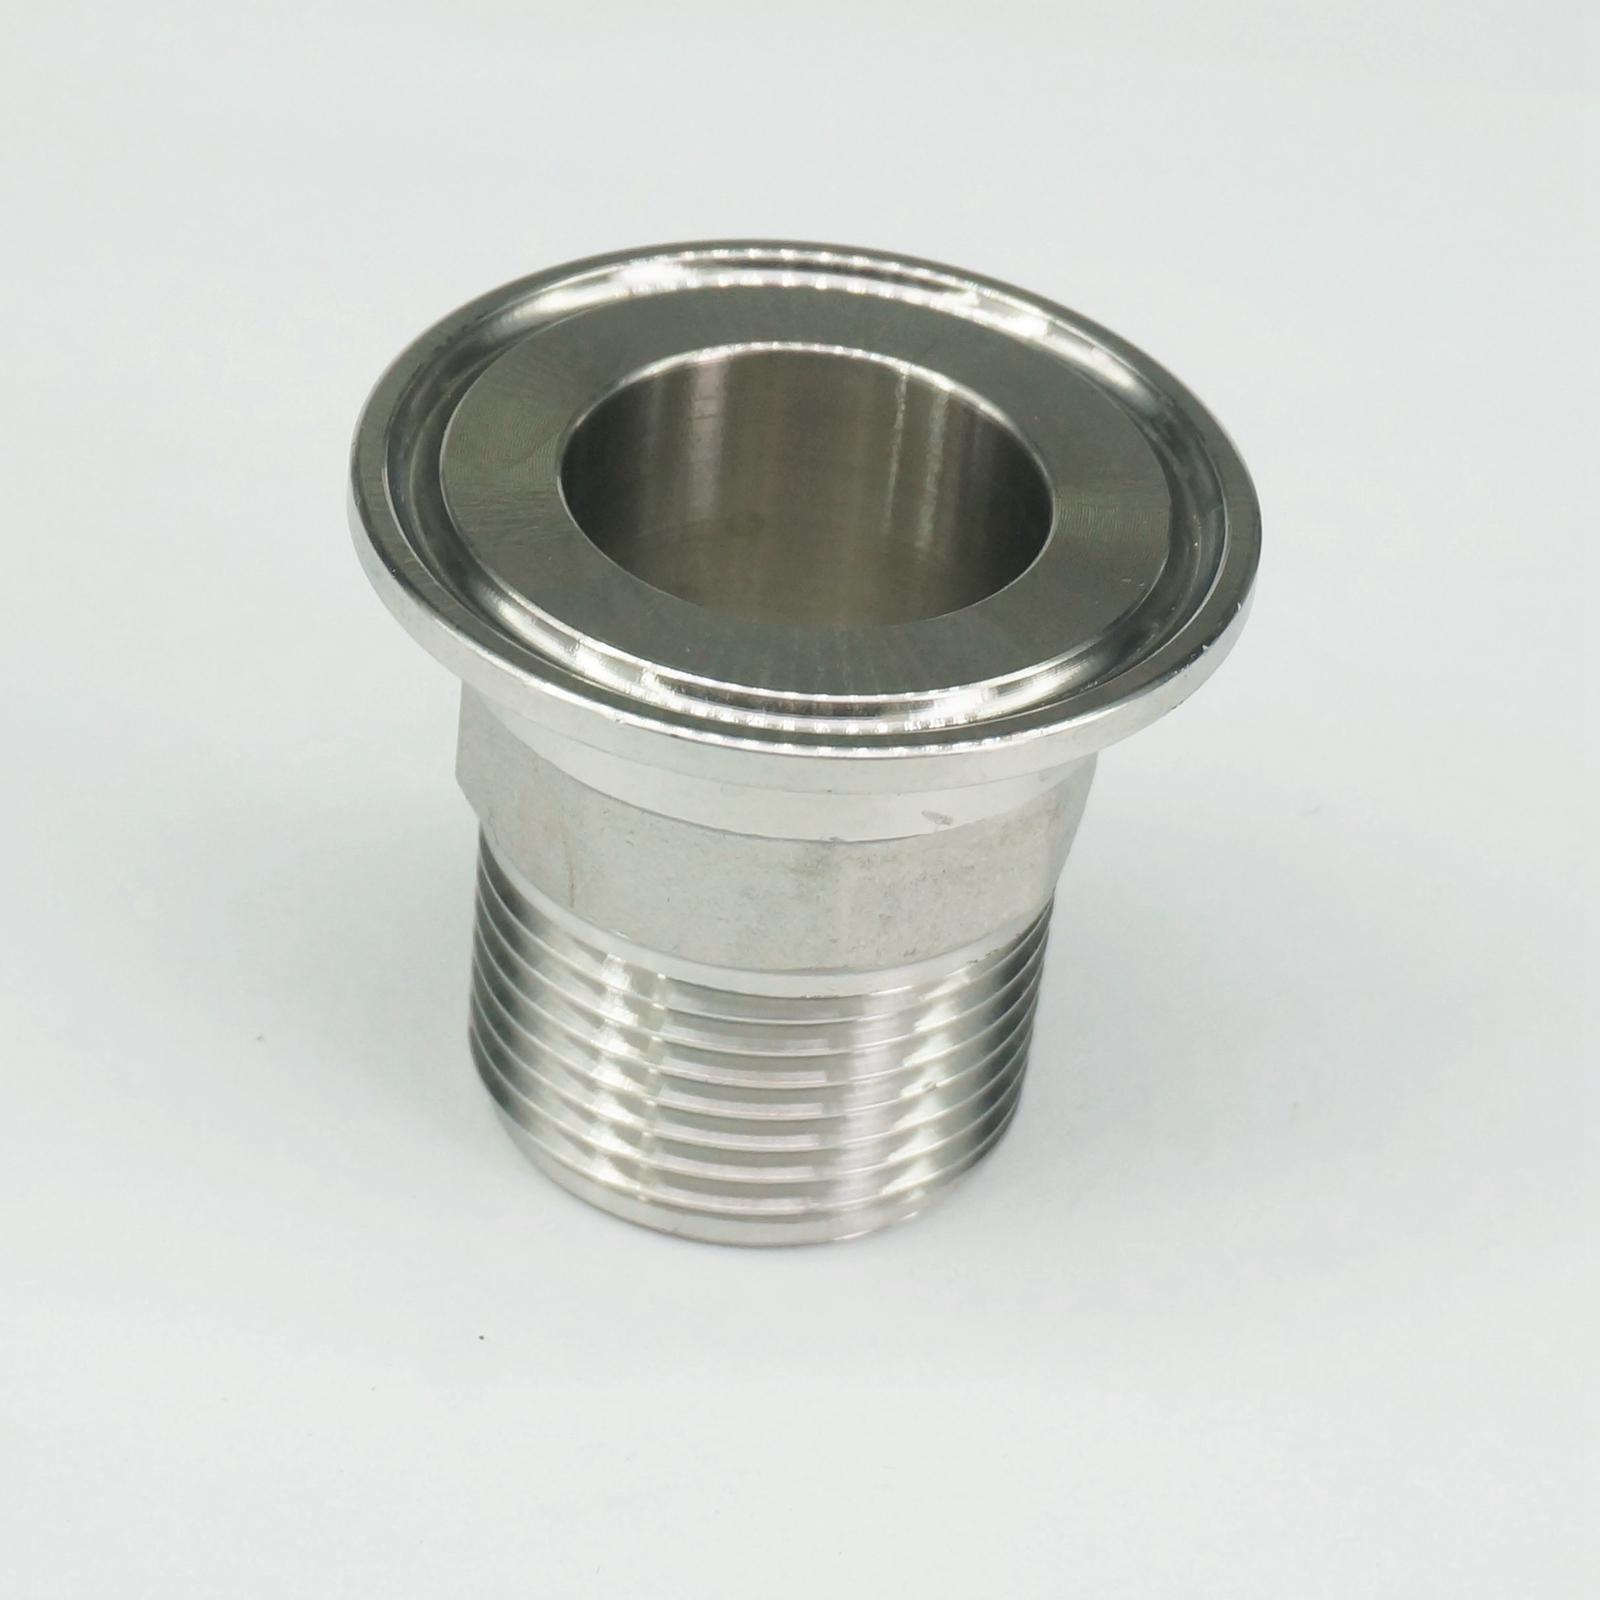 Sorekarain 3//4 BSP Male 1.5 Tri Clamp SUS304 Sanitary Fitting Hex Nut Connector Homebrew